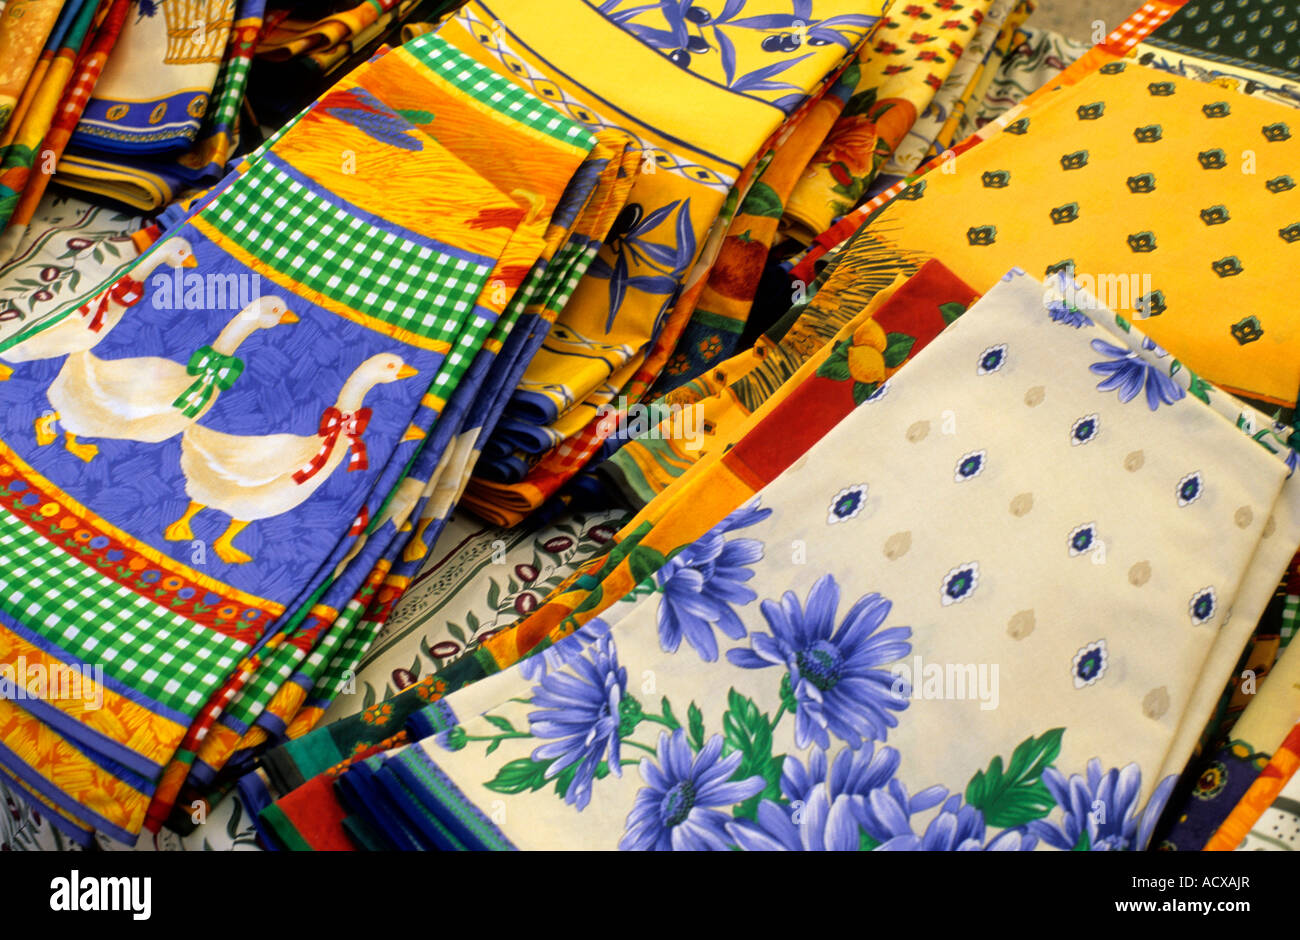 Pretty Traditional Tablecloths On A Provencal Market Stall, Provence, France